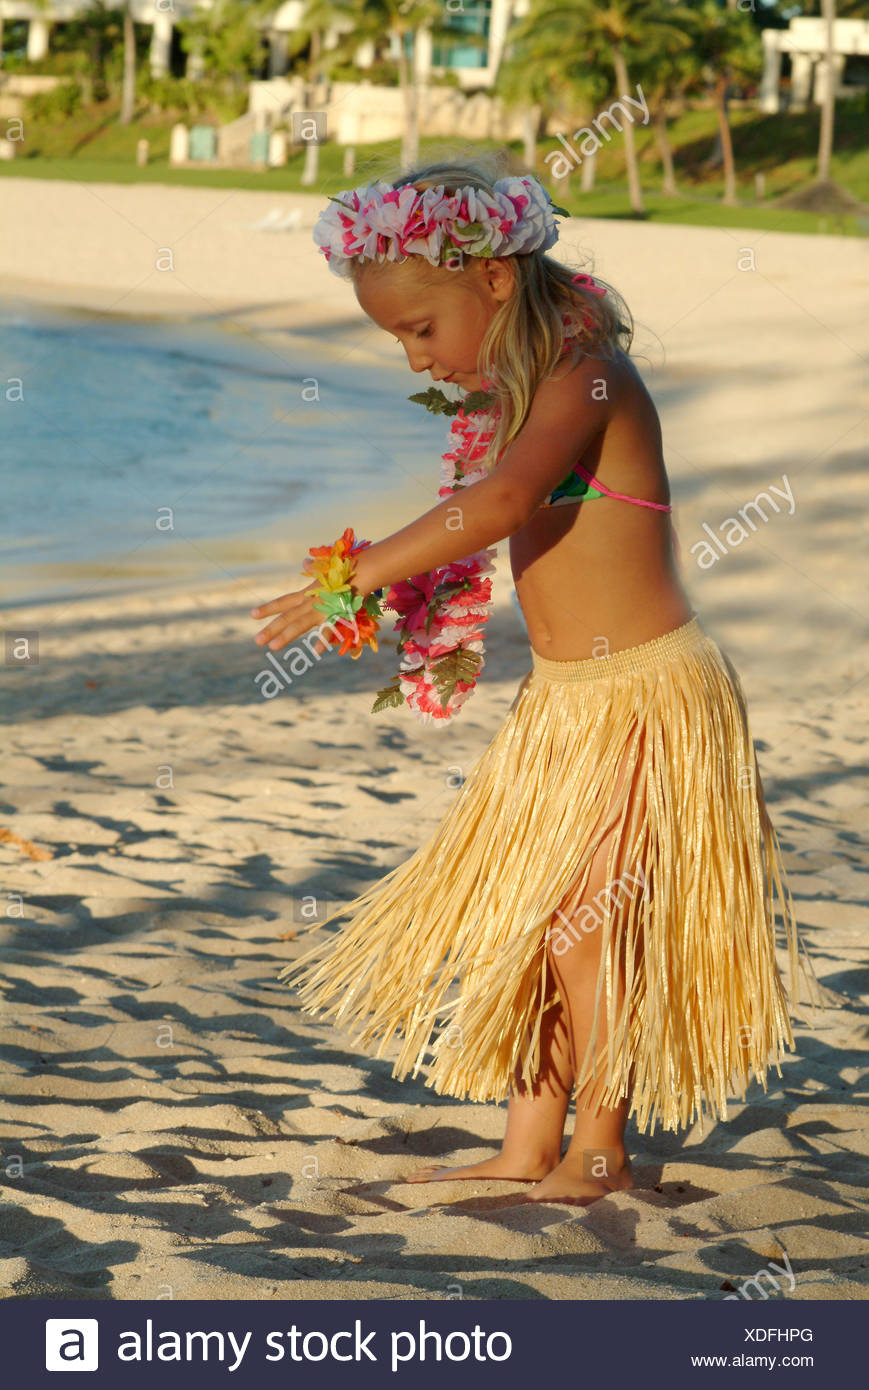 Young girl visiting the islands wearing a hula skirt and dancing on the beach - Stock Image